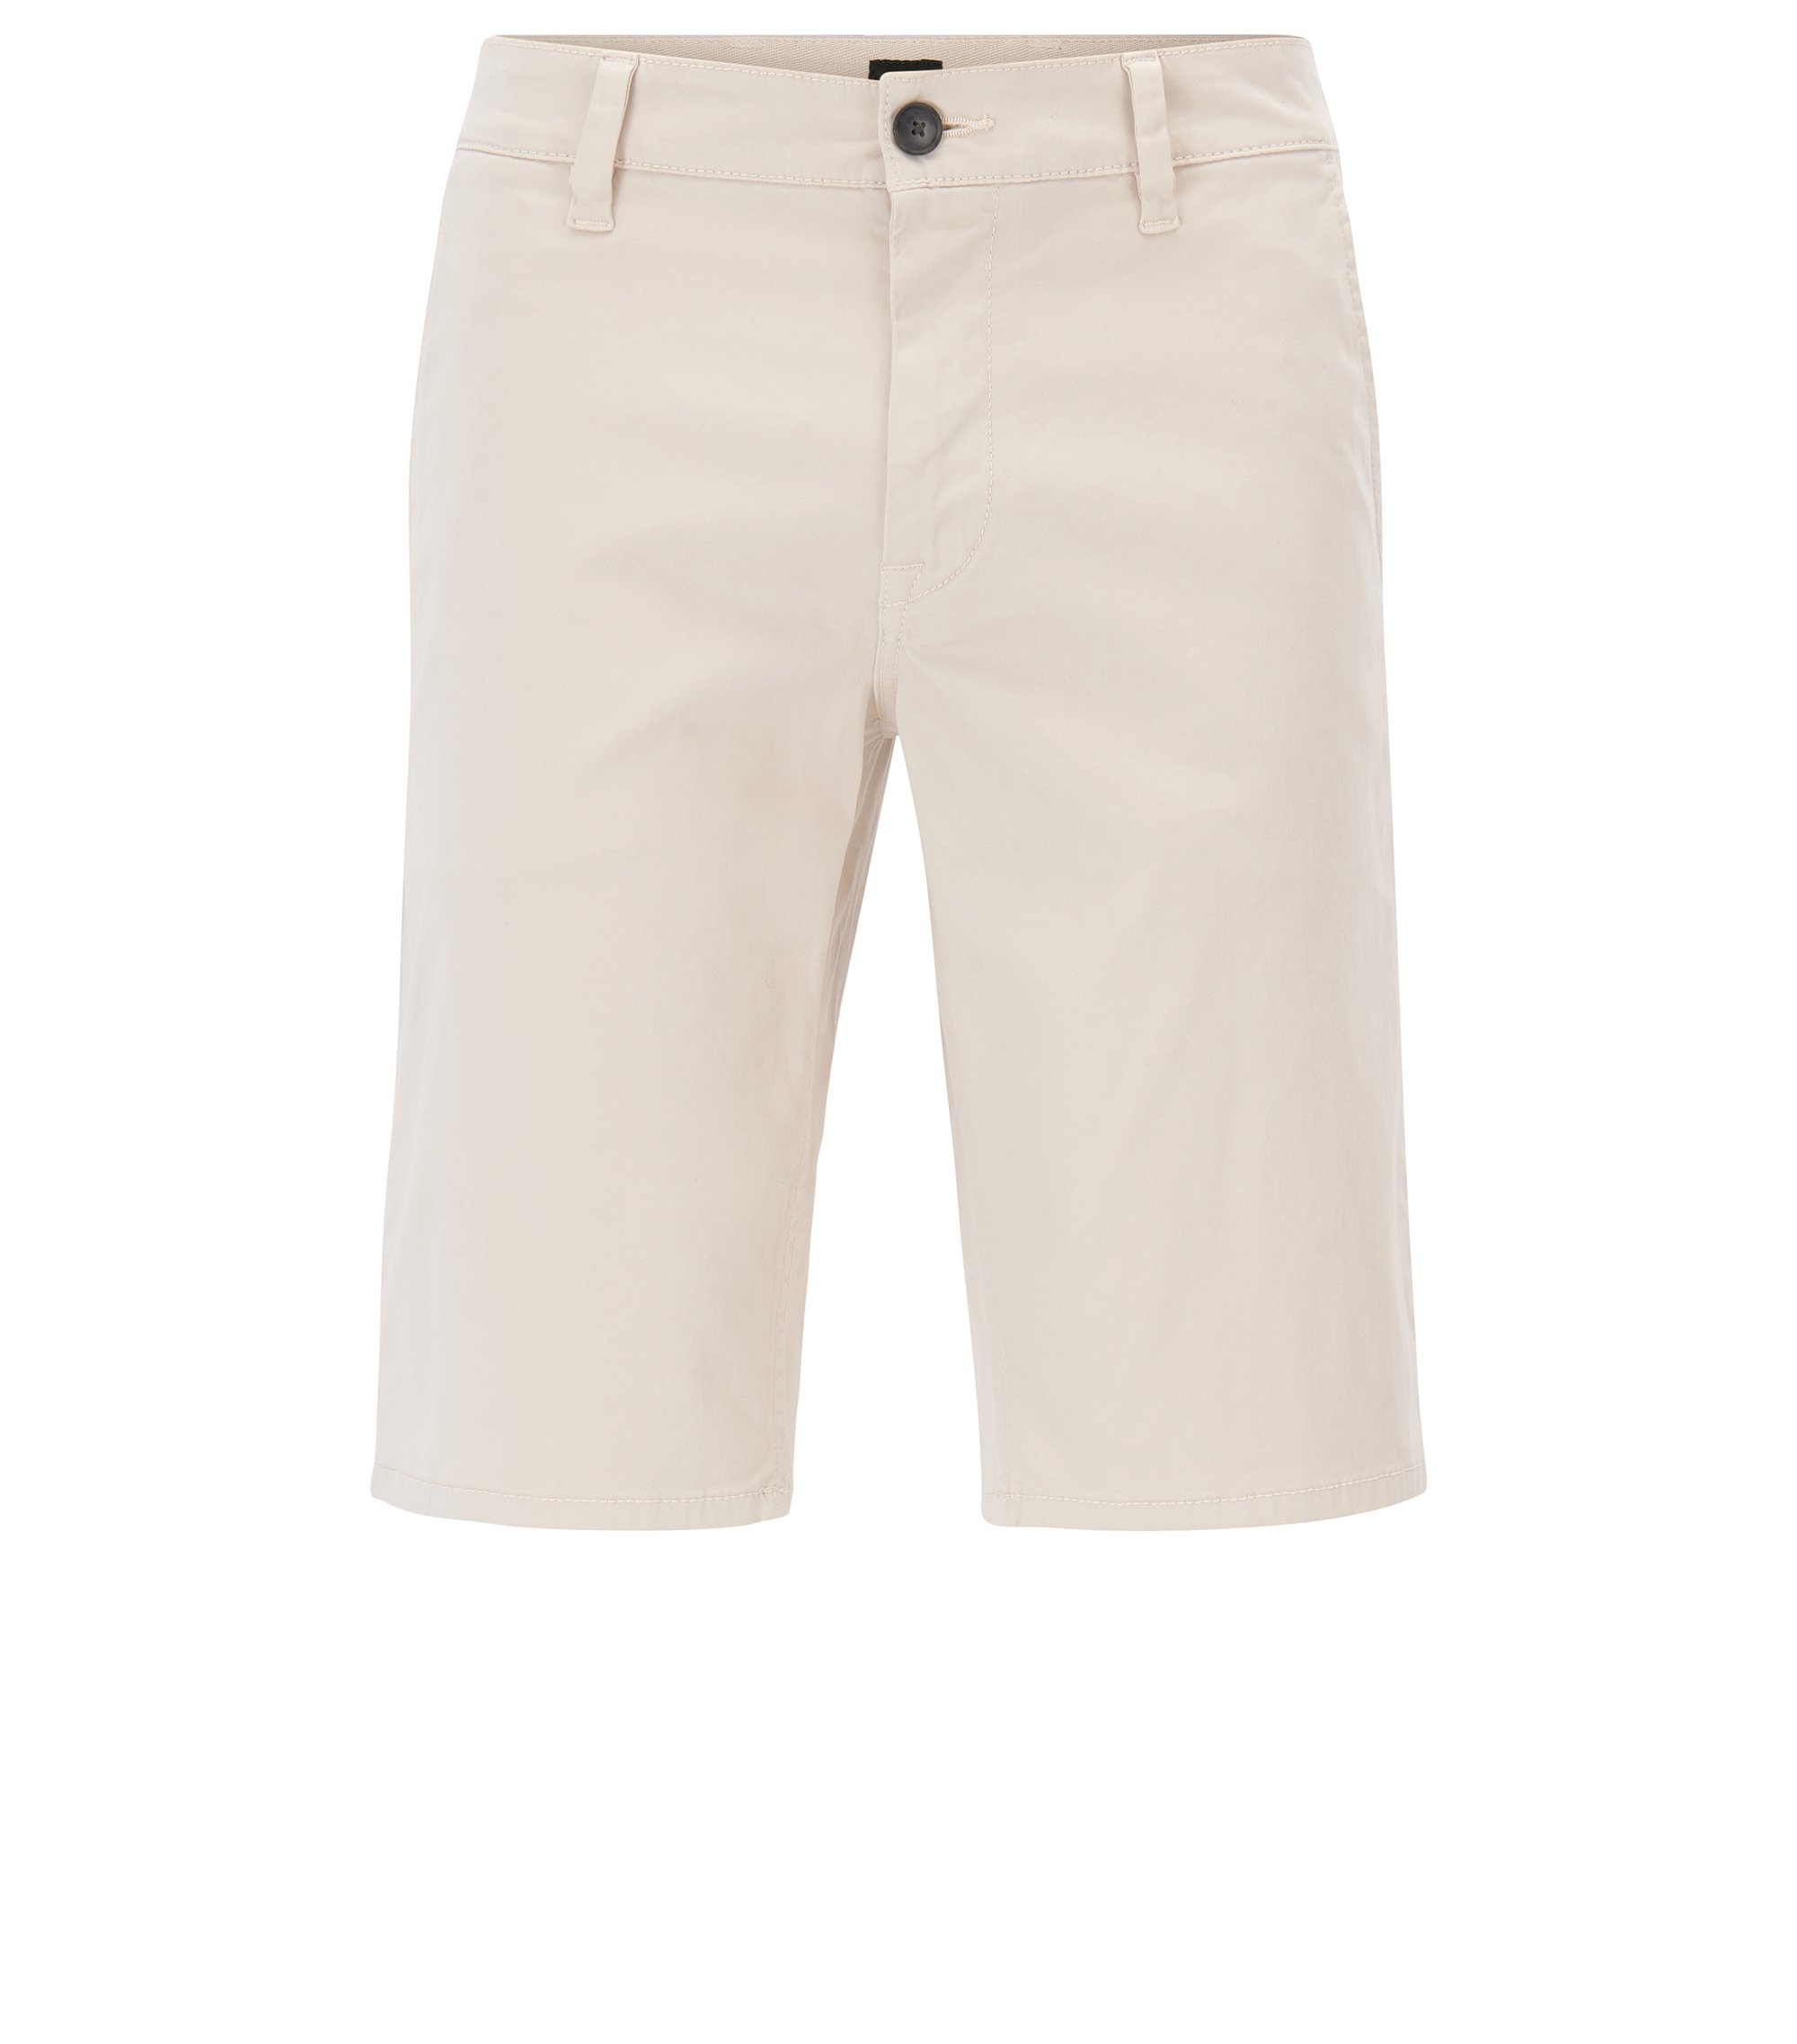 Stretch Cotton Chino Short, Slim Fit | Schino Slim Shorts D, Open White